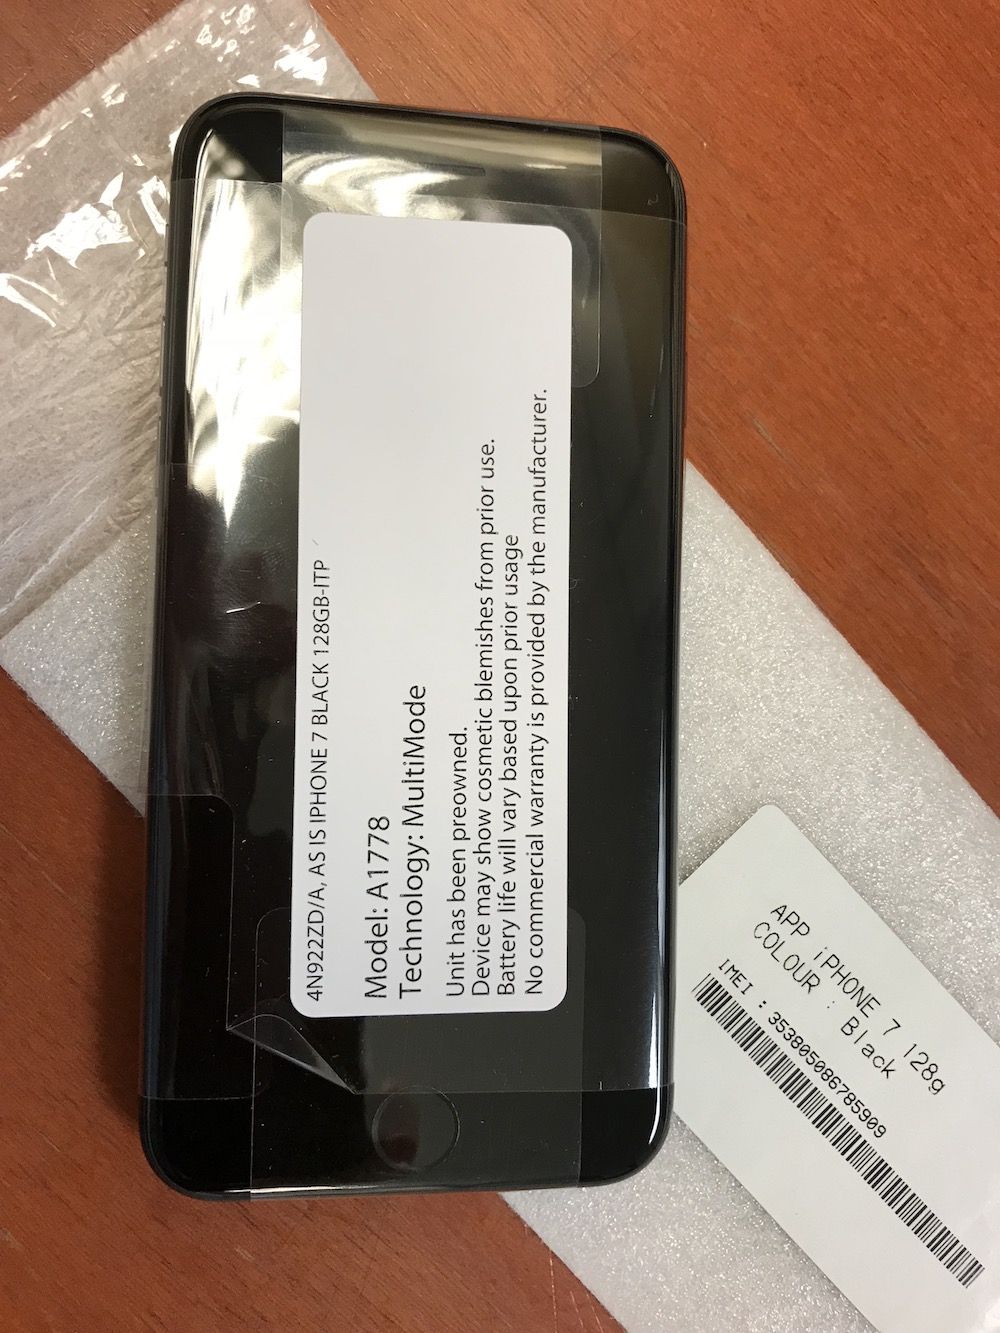 Good condition Apple iPhone iPad Refurbished Products for sale